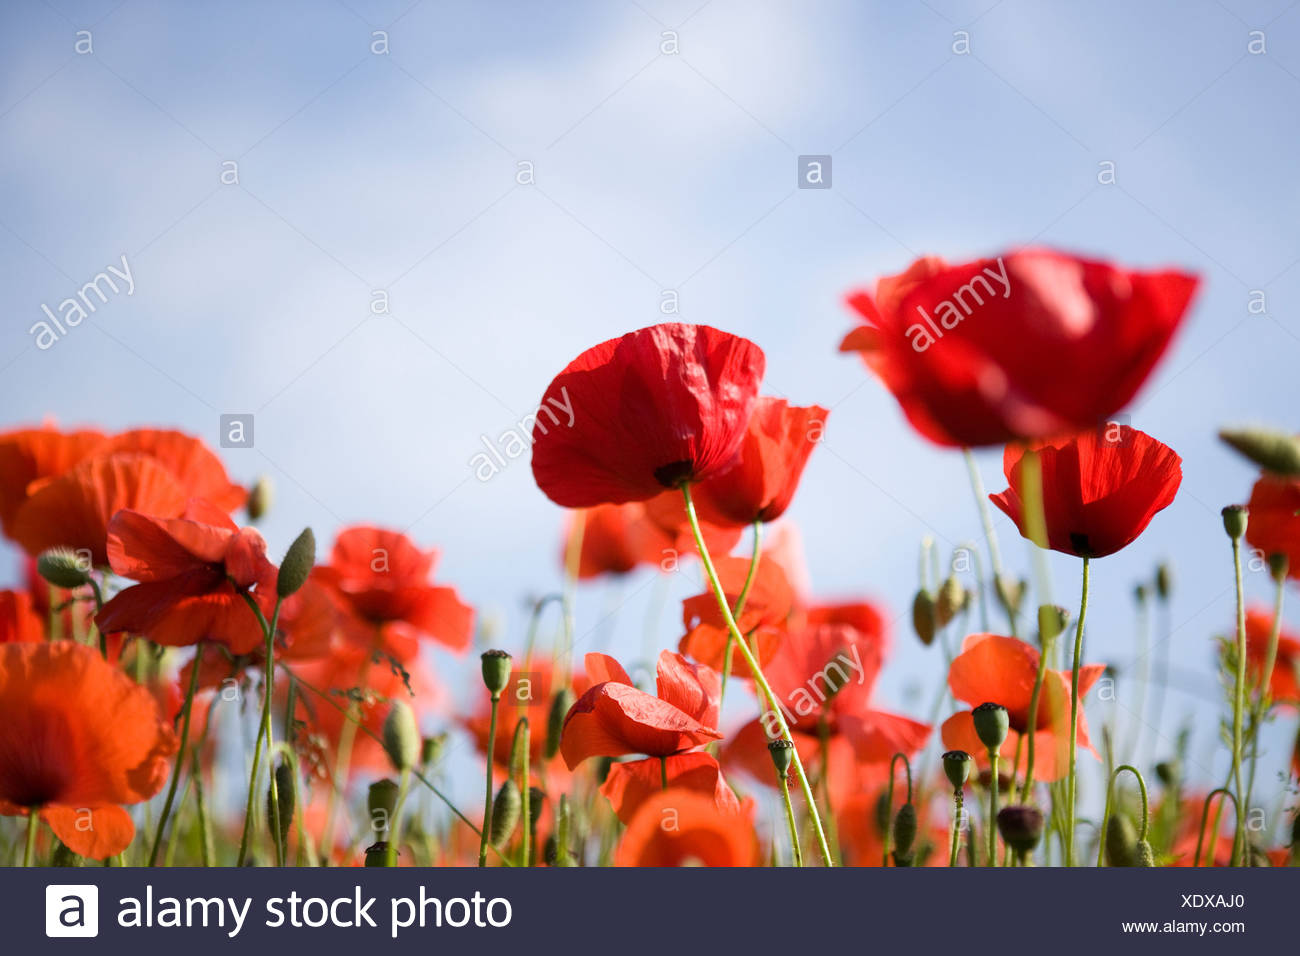 Red poppies against blue sky - Stock Image